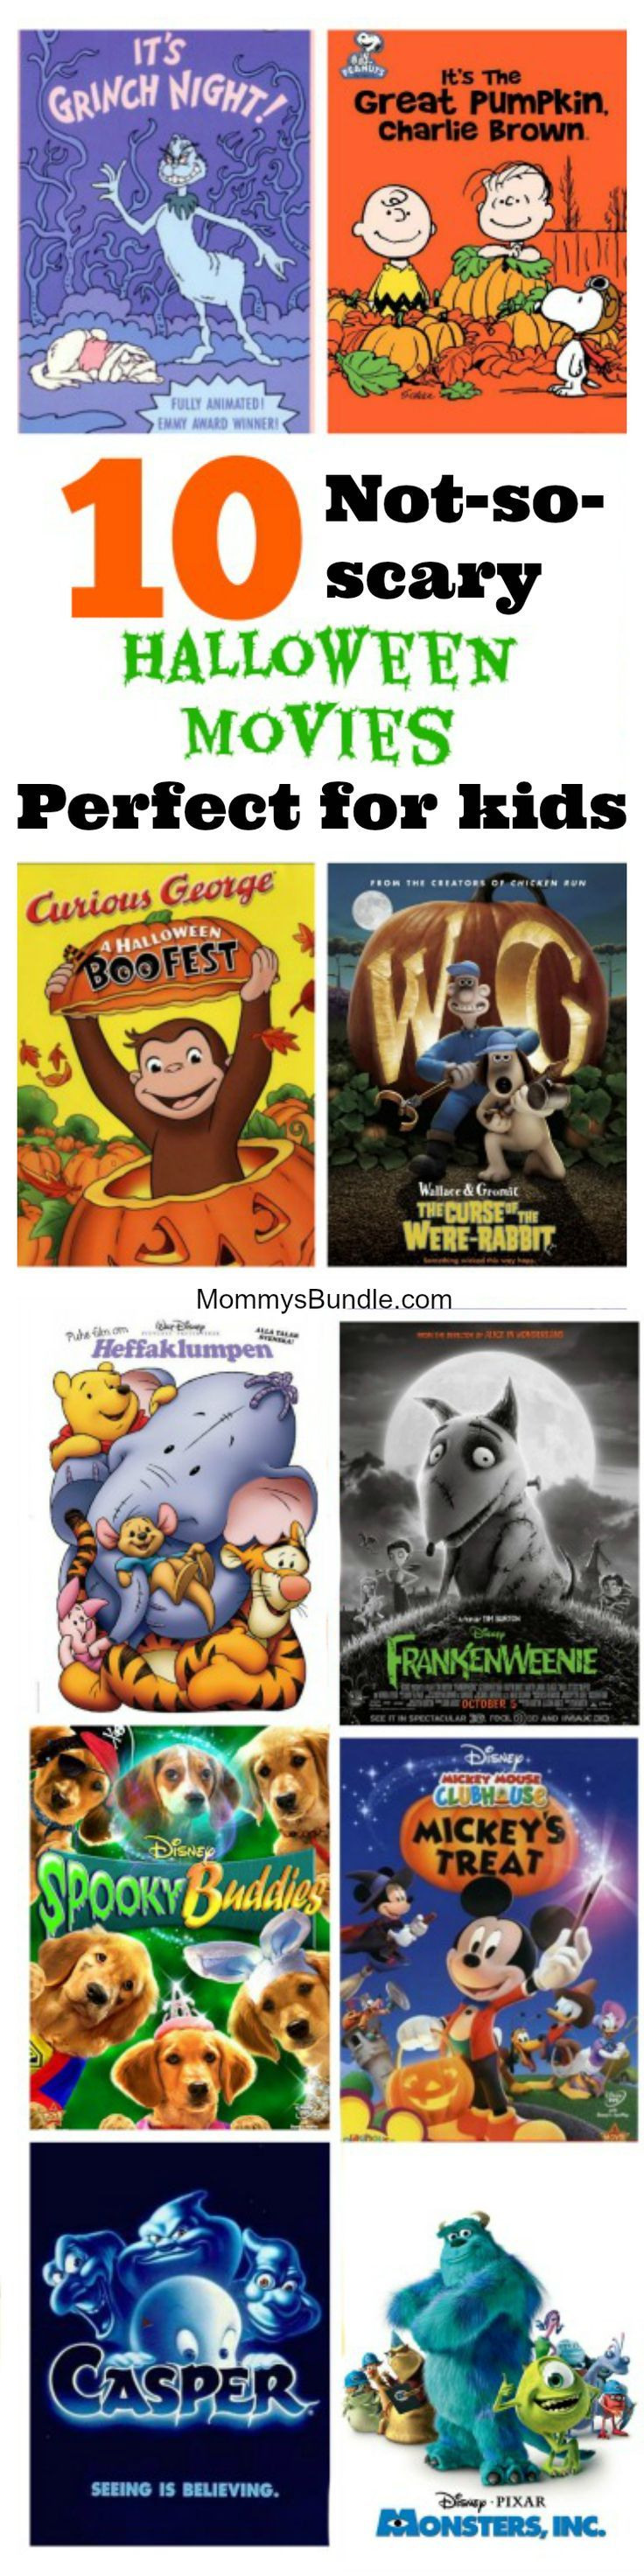 its hard to find a kid friendly halloween movie this roundup includes 10 top - Kid Friendly Halloween Movie